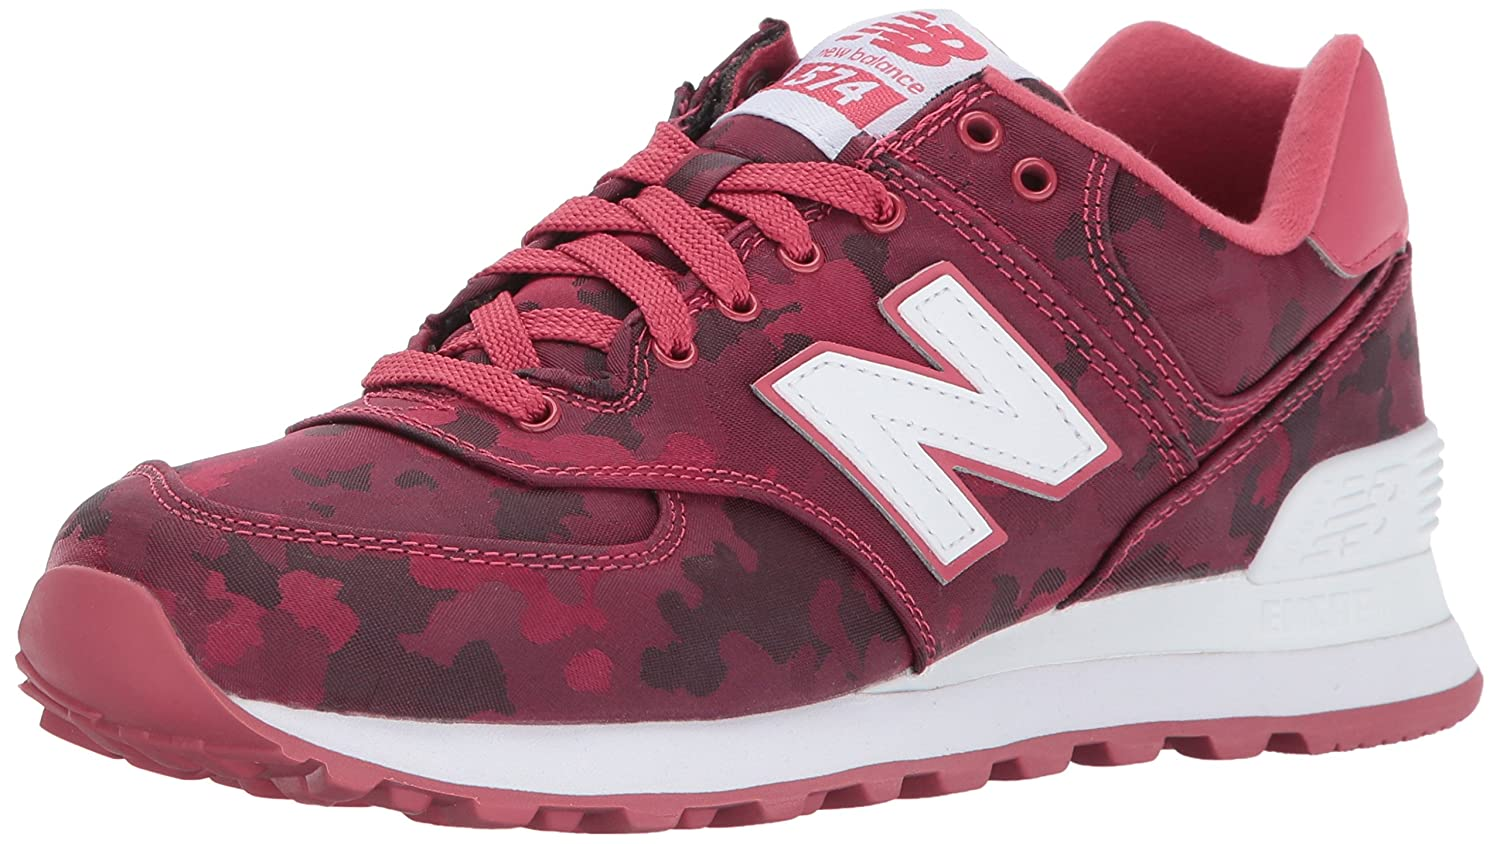 New Balance Women's 574 Camo Pack Lifestyle Fashion Sneaker B01LXCODDA 5 B(M) US|Radish/White